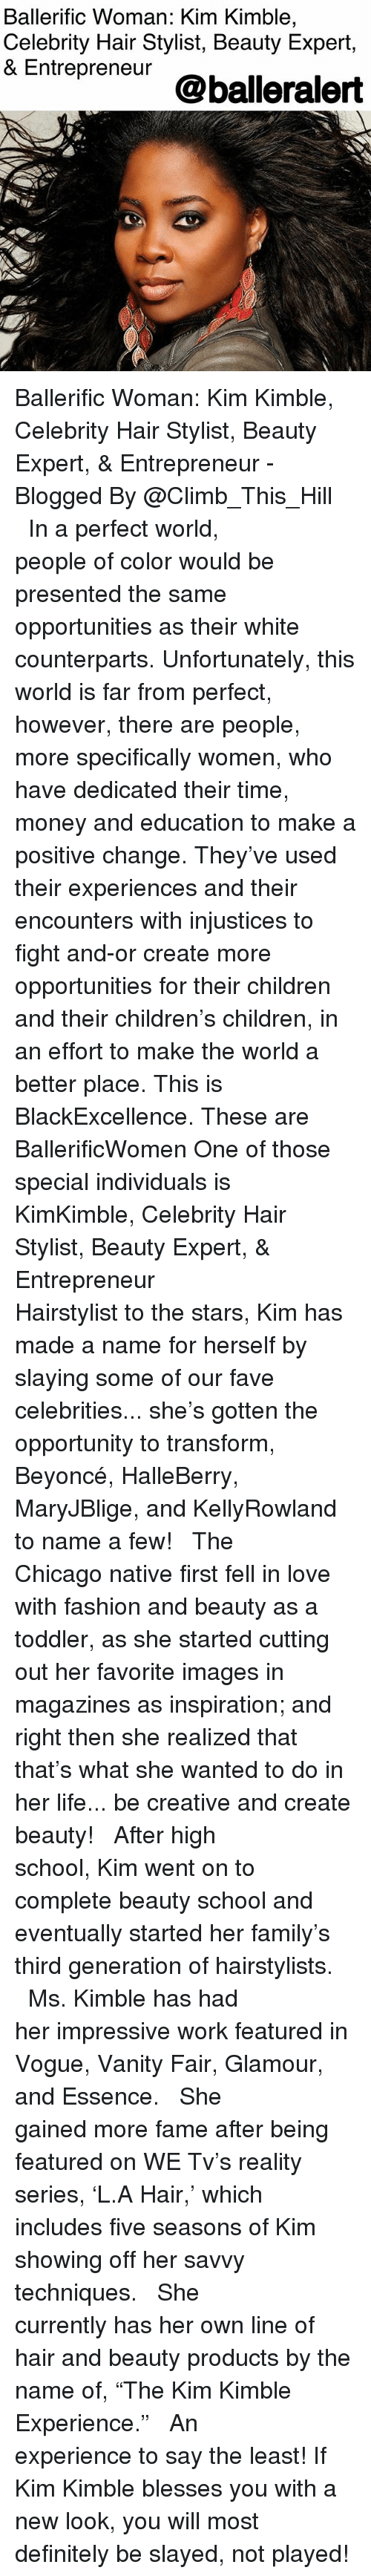 How old is celebrity hair stylist kim kimble